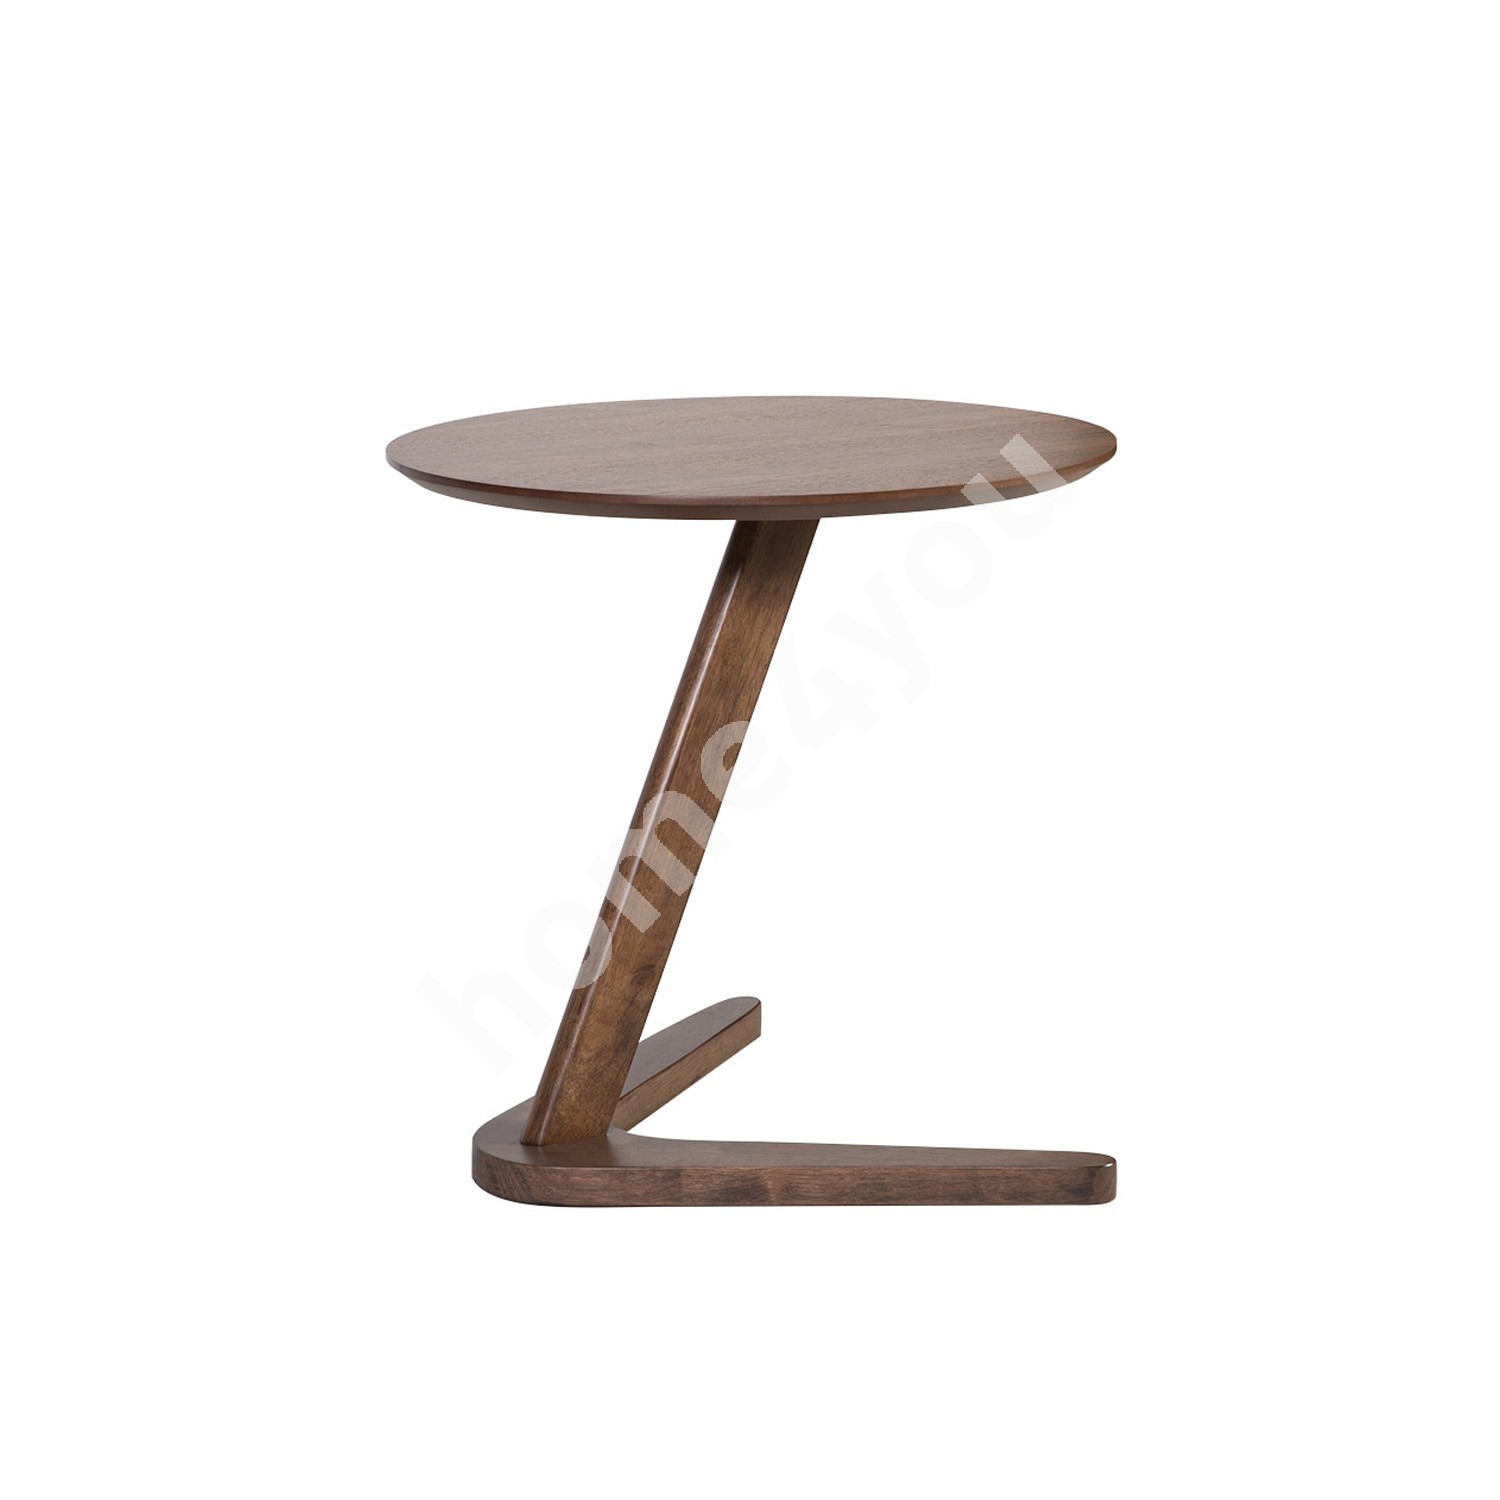 Side table LANA D50xH55cm, table top: MDF with walnut veneer, leg: rubber wood, color: walnut